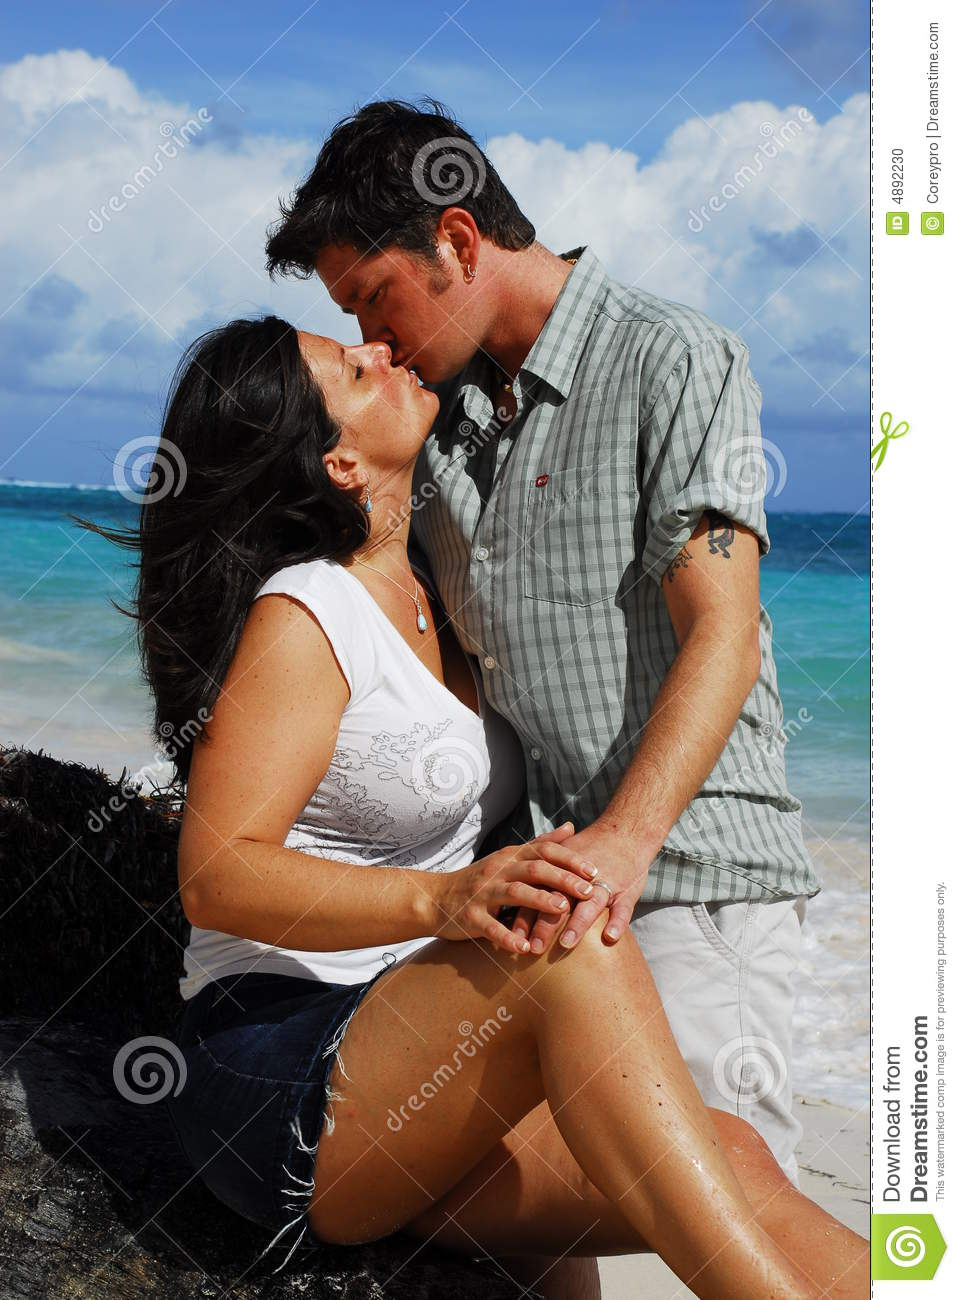 Romantic couple making love on the beach